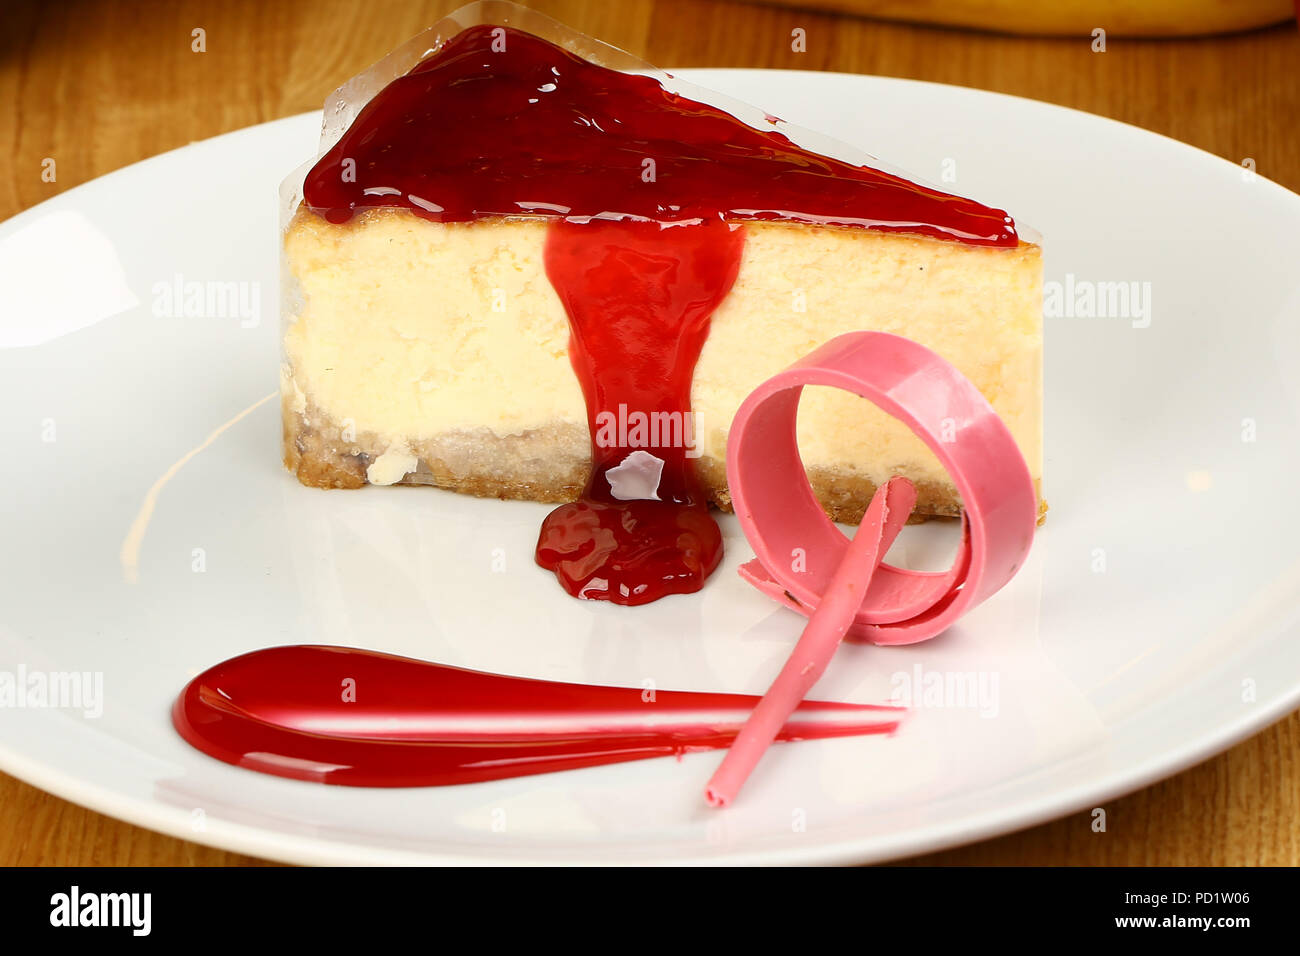 Strawberry cheesecake and coffee cup - Stock Image